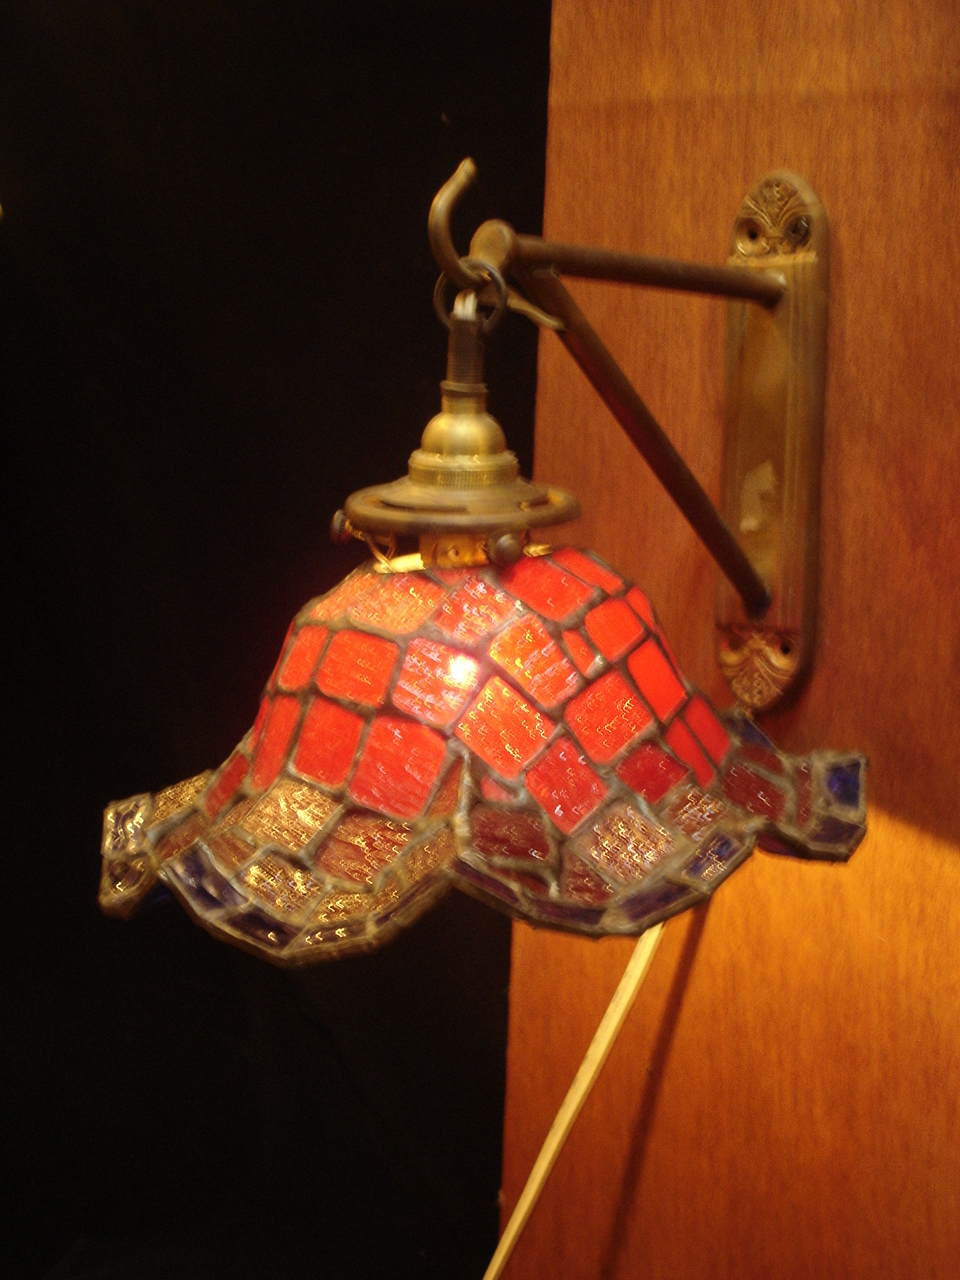 Stain glass wall lamp Item code NO.B27